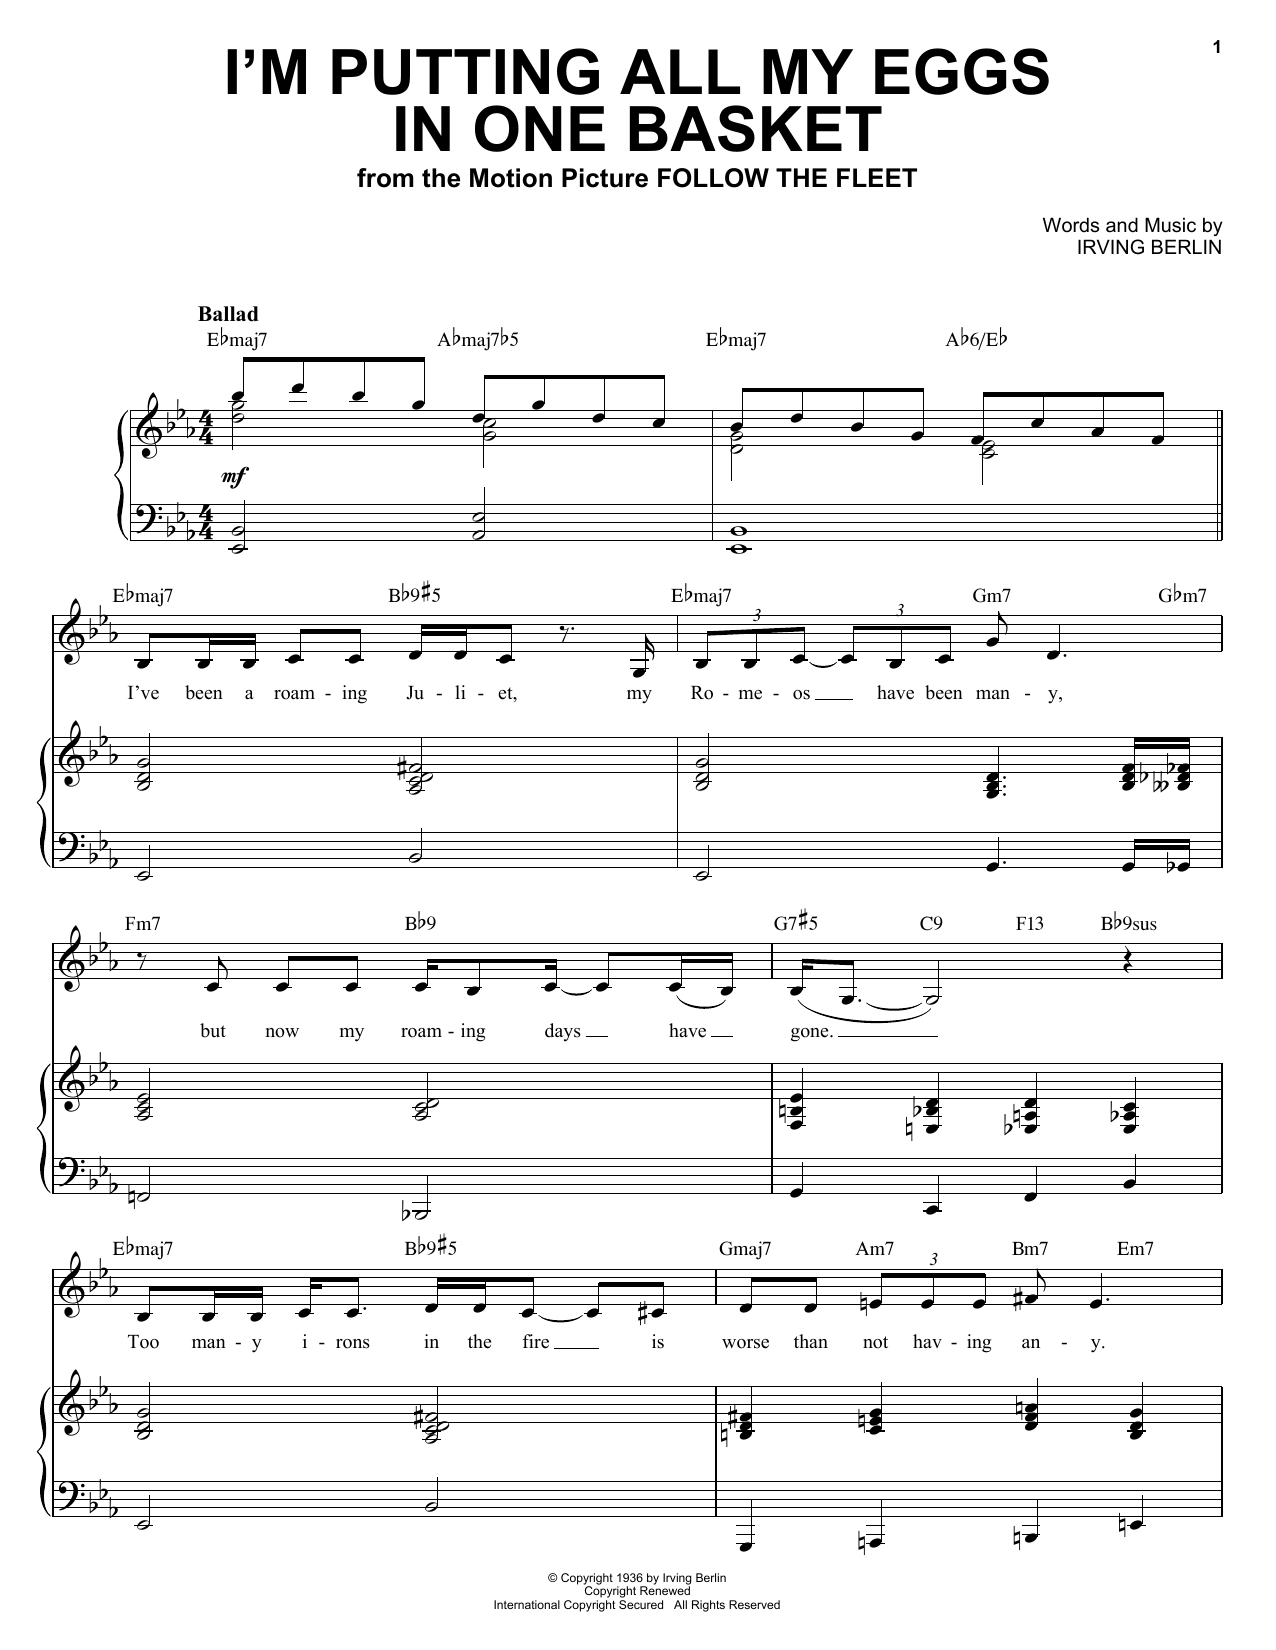 Ella Fitzgerald I'm Putting All My Eggs In One Basket sheet music notes and chords. Download Printable PDF.